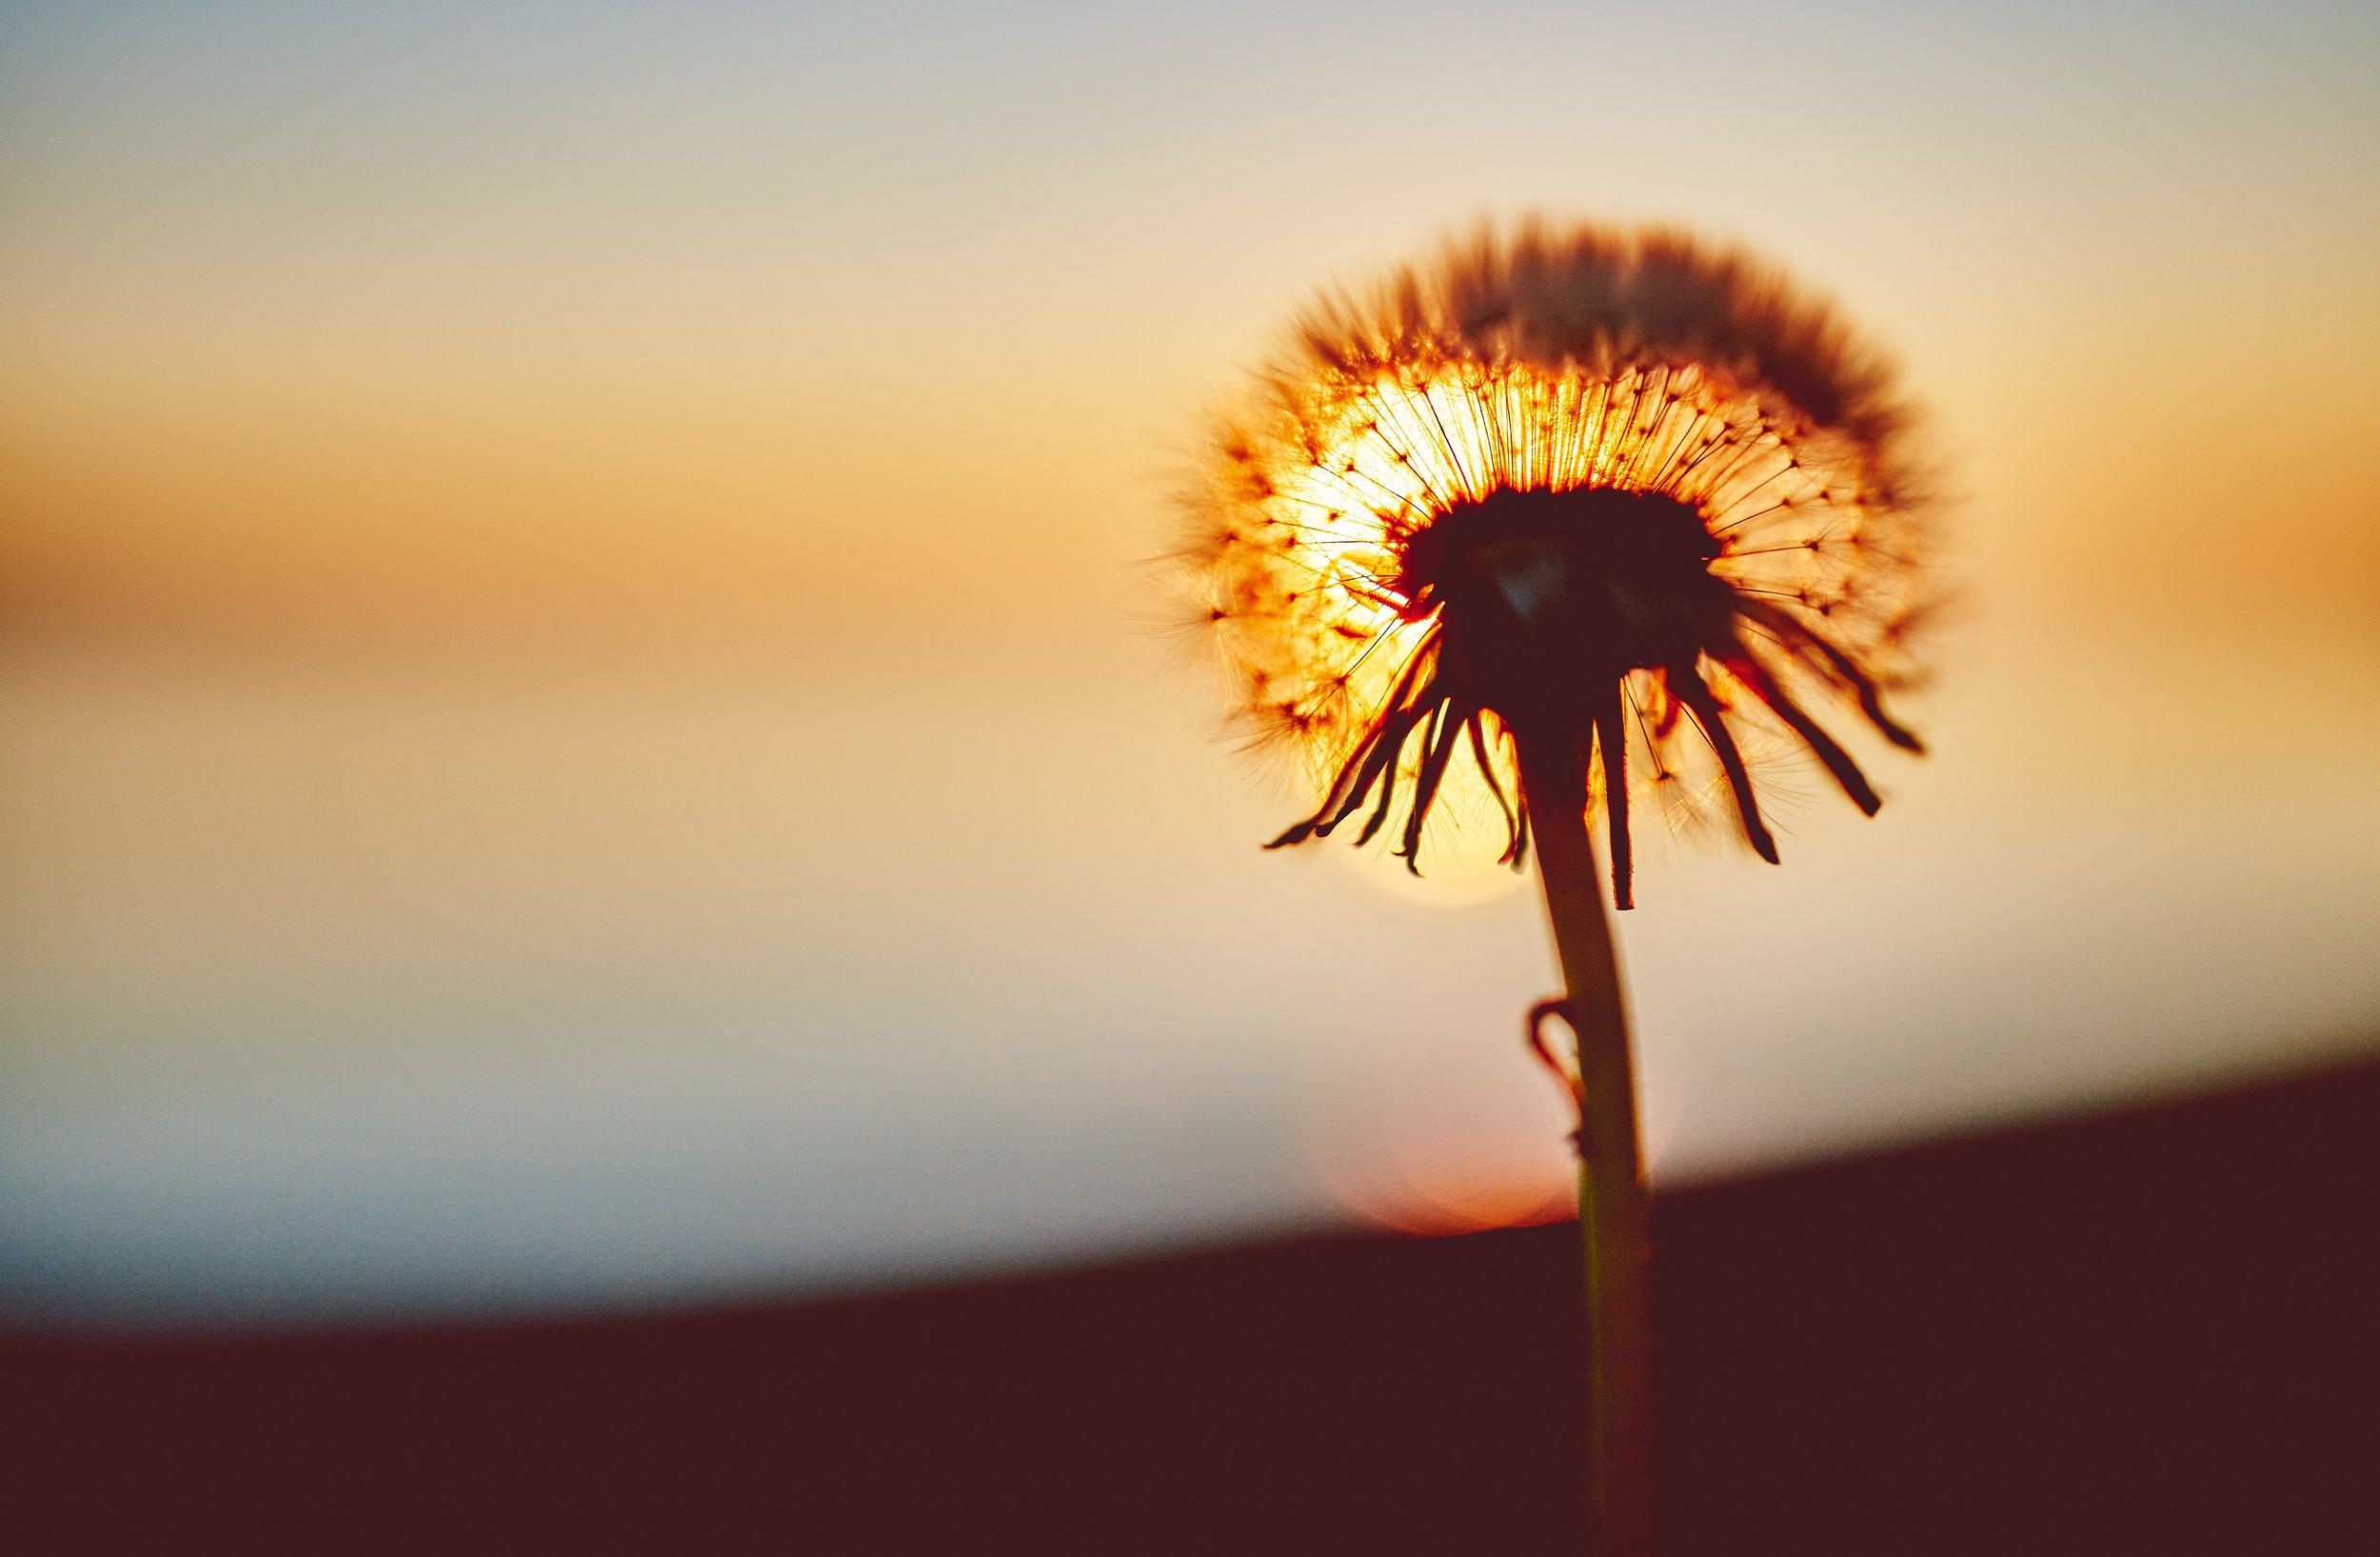 dandelion-flower-nature-sunset-wallpaper.jpg